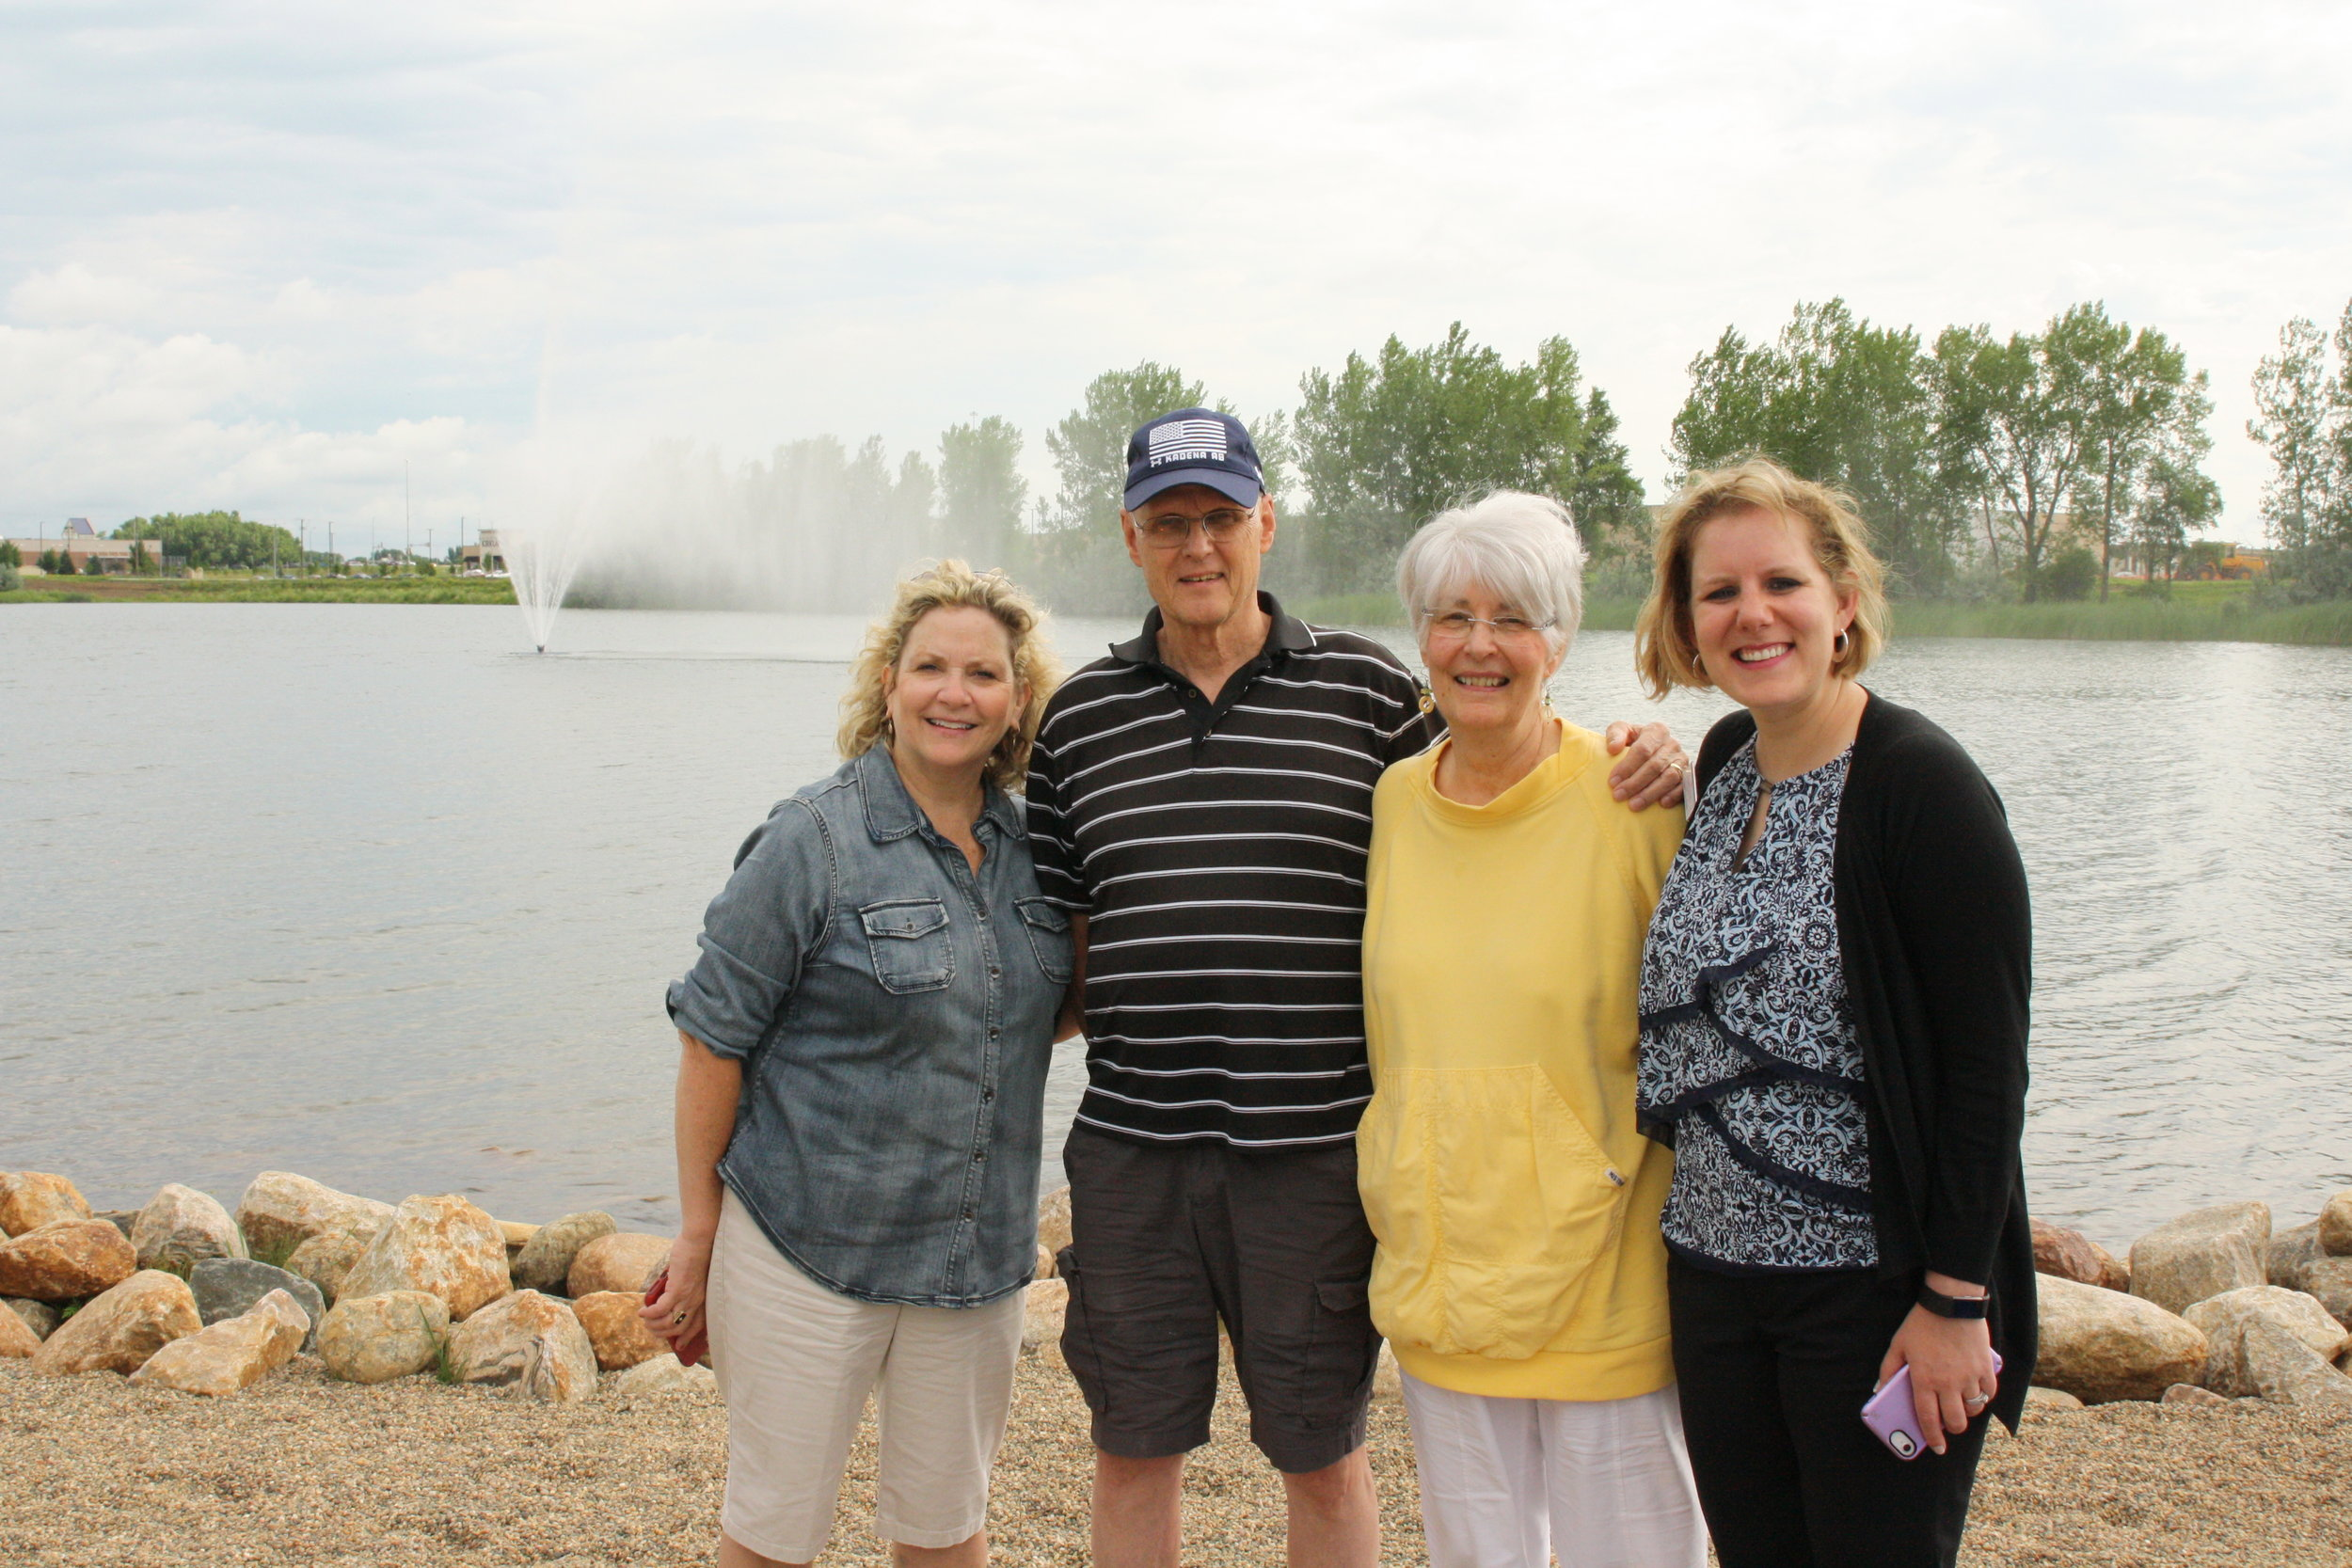 Pictured are some of the residents and staff of Grand Living at Lake Lorraine, who watched the fountain installation from the shore.